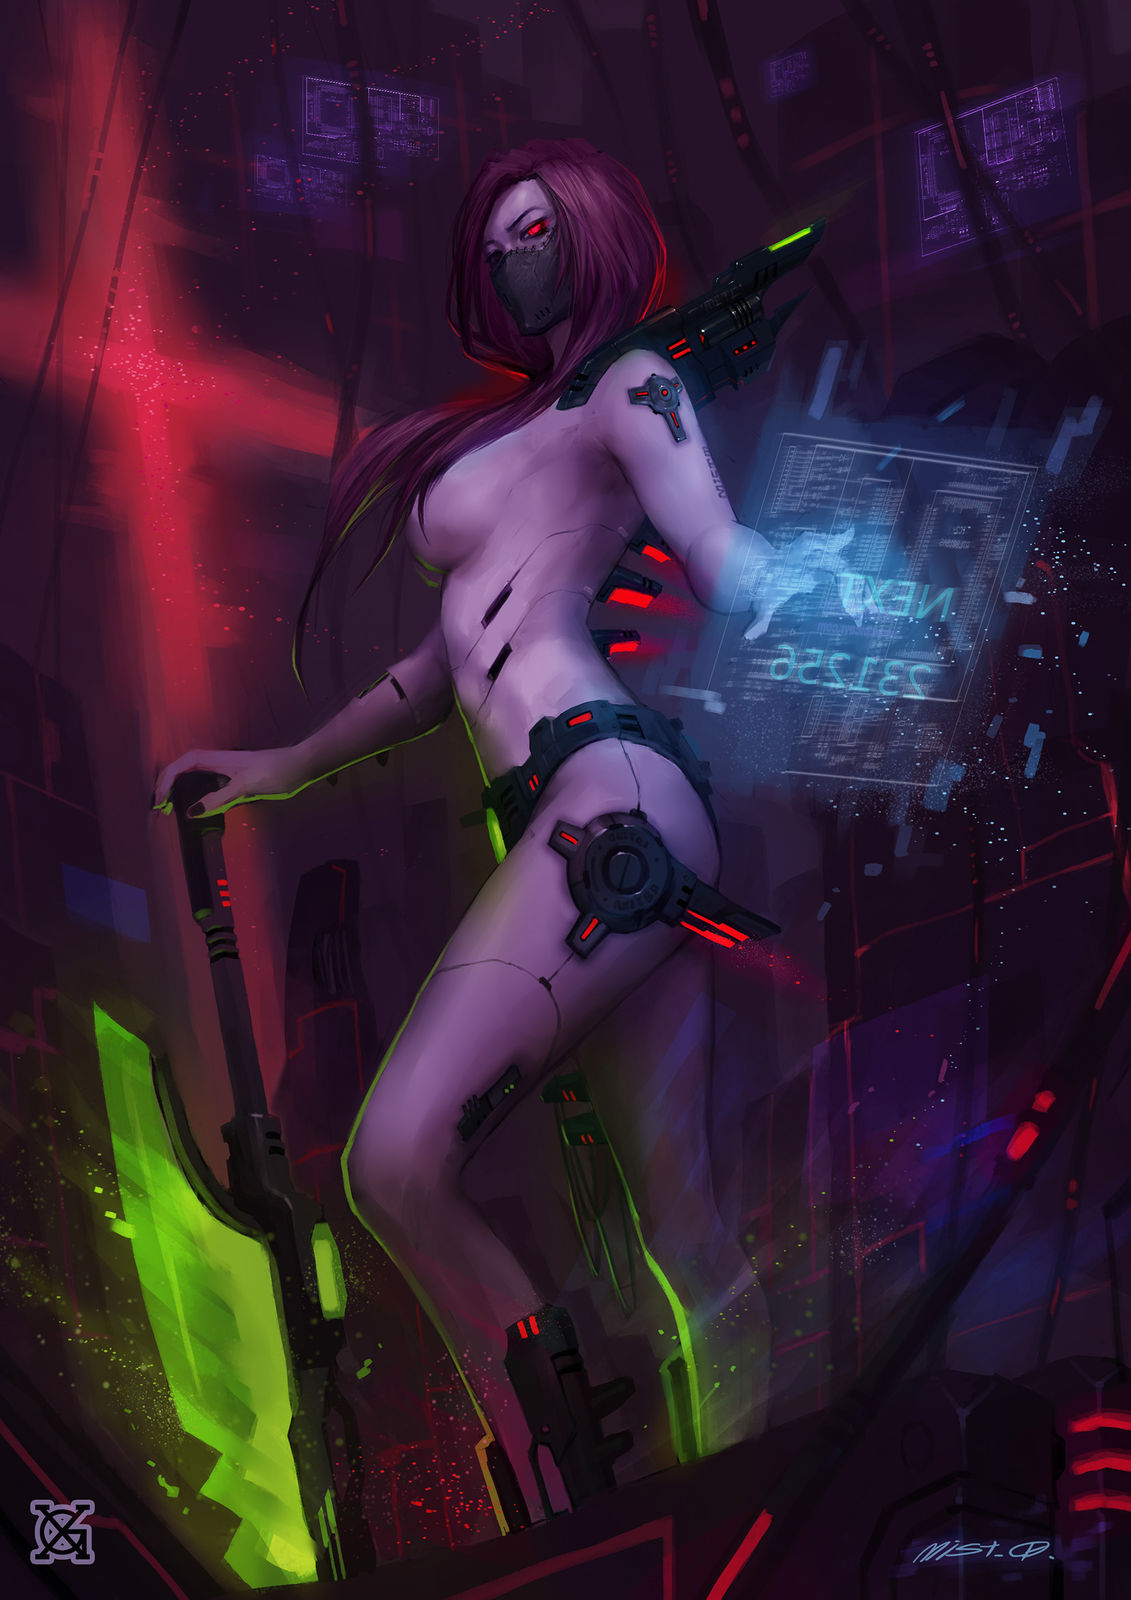 Nude sci-fi fantasy art sexy movie